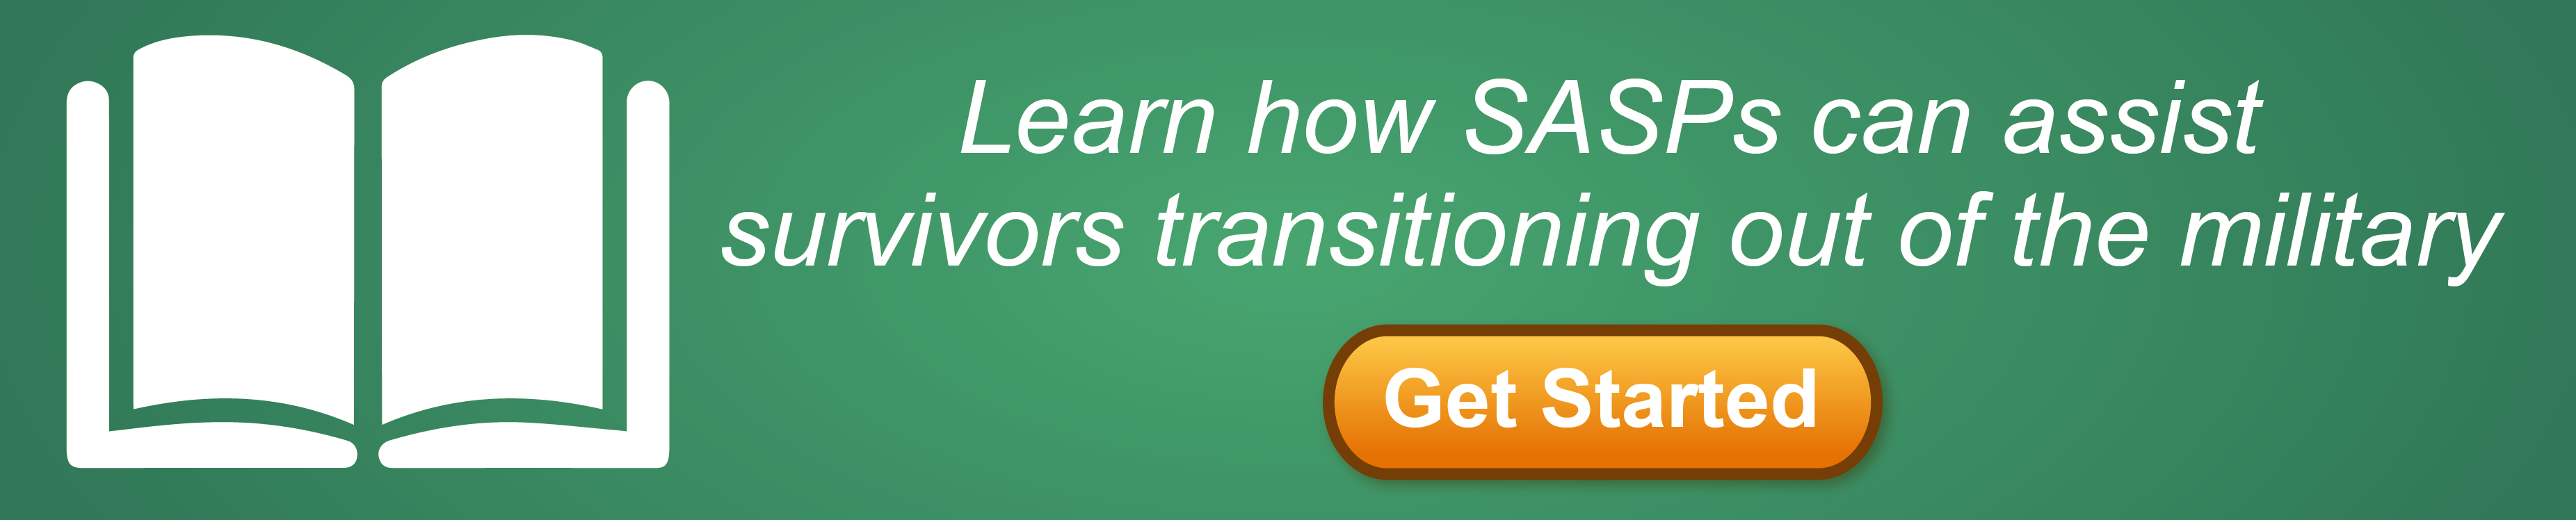 "Graphic reading ""Learn how SASPs can assist survivors transitioning out of the military"""